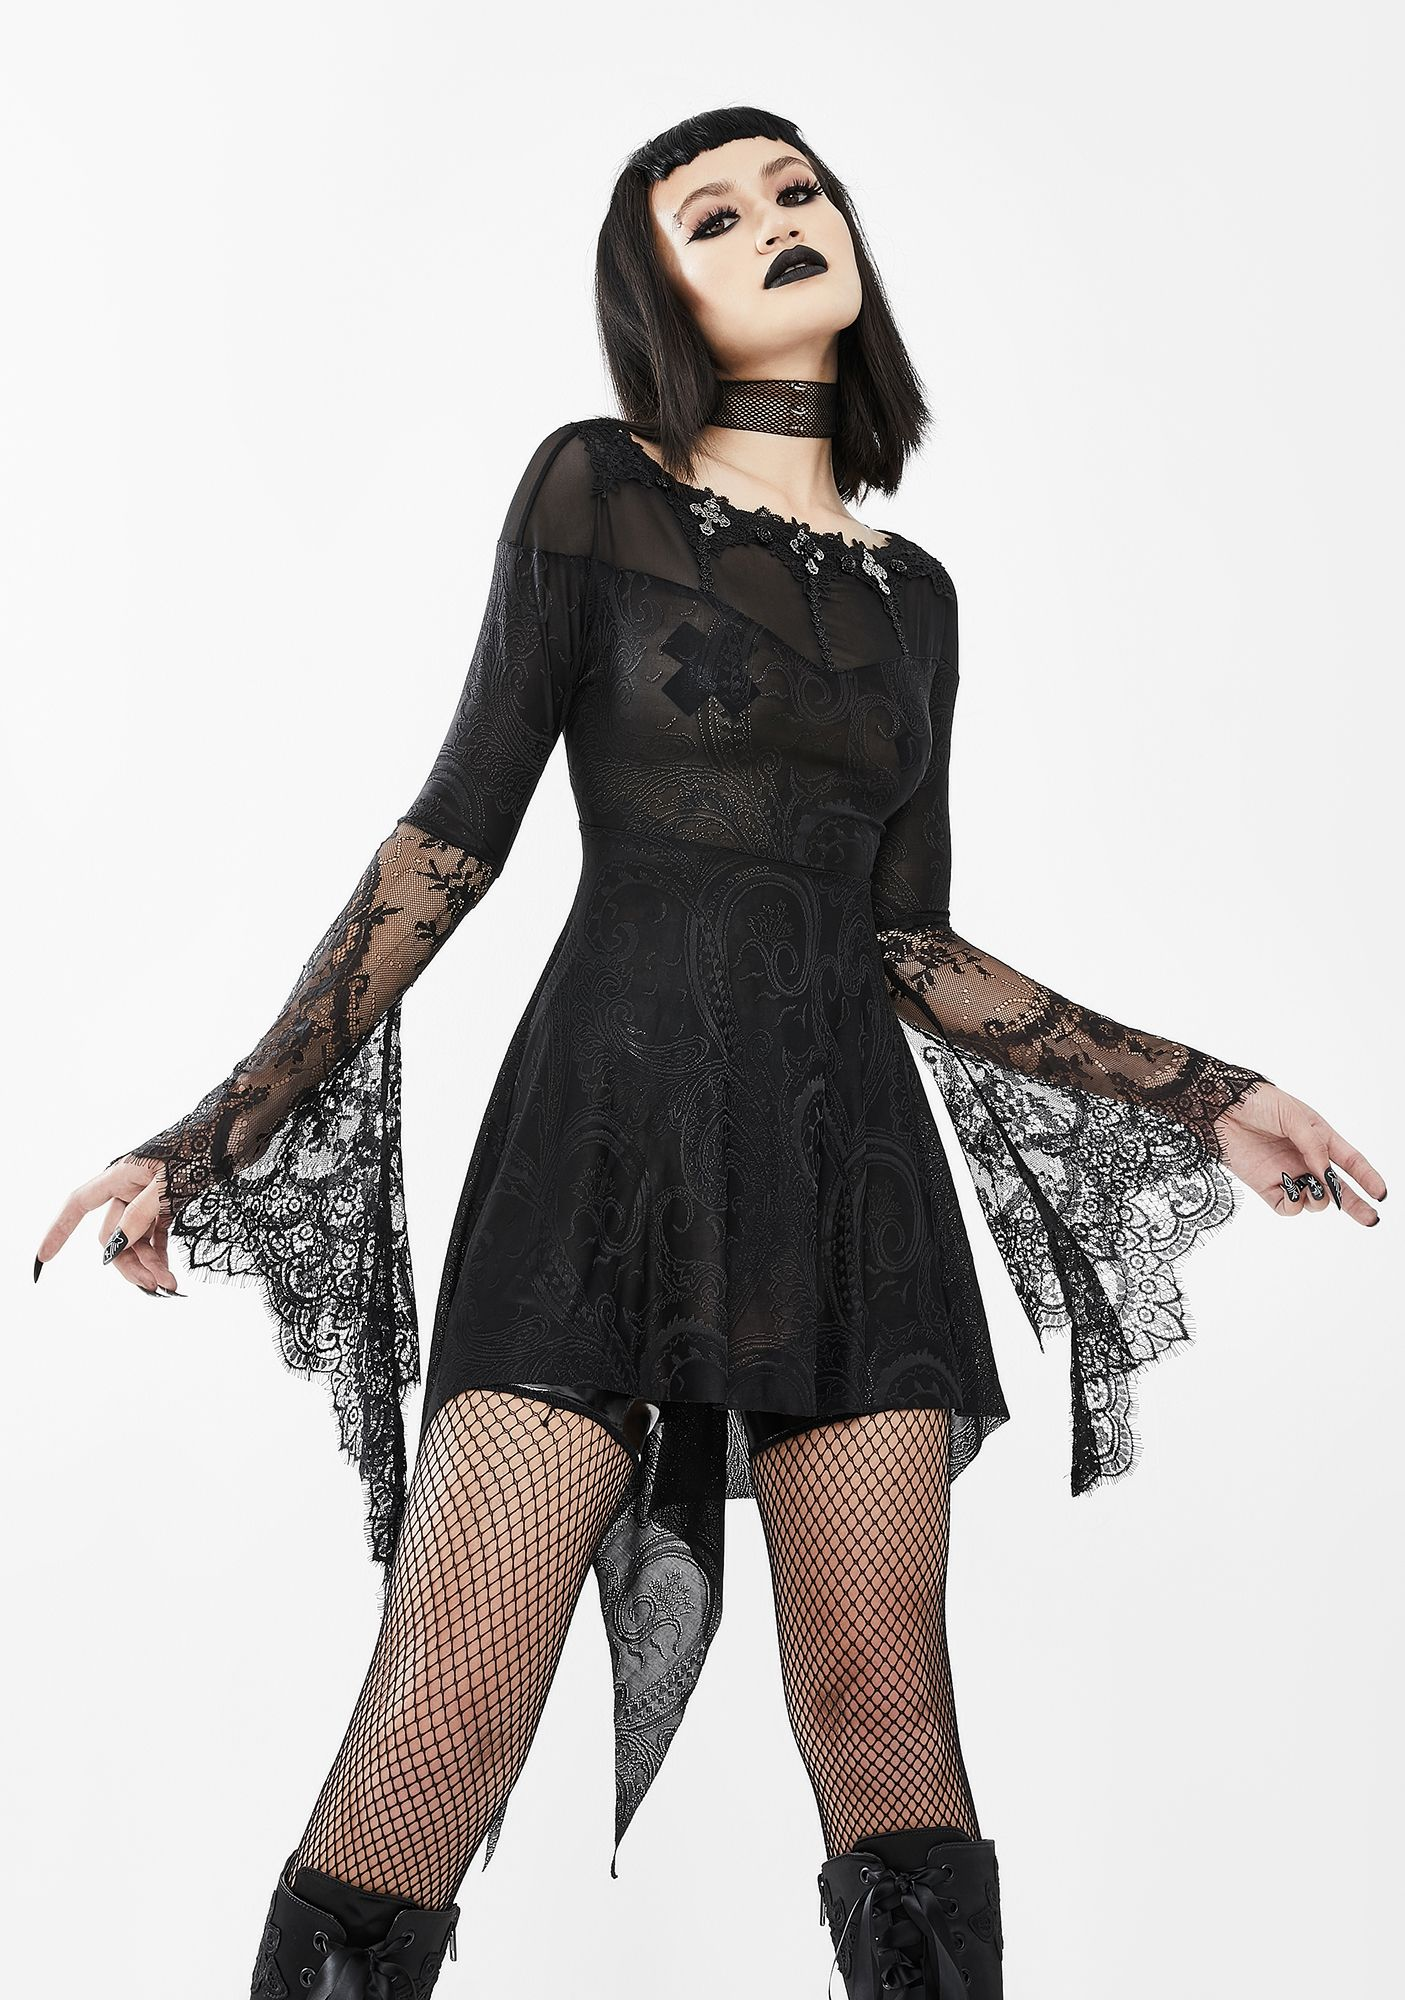 Sheer Black Dress With Lace Bell Sleeves In 2021 Black Sheer Dress Lace Dress Women Lace Blouse [ 2000 x 1405 Pixel ]